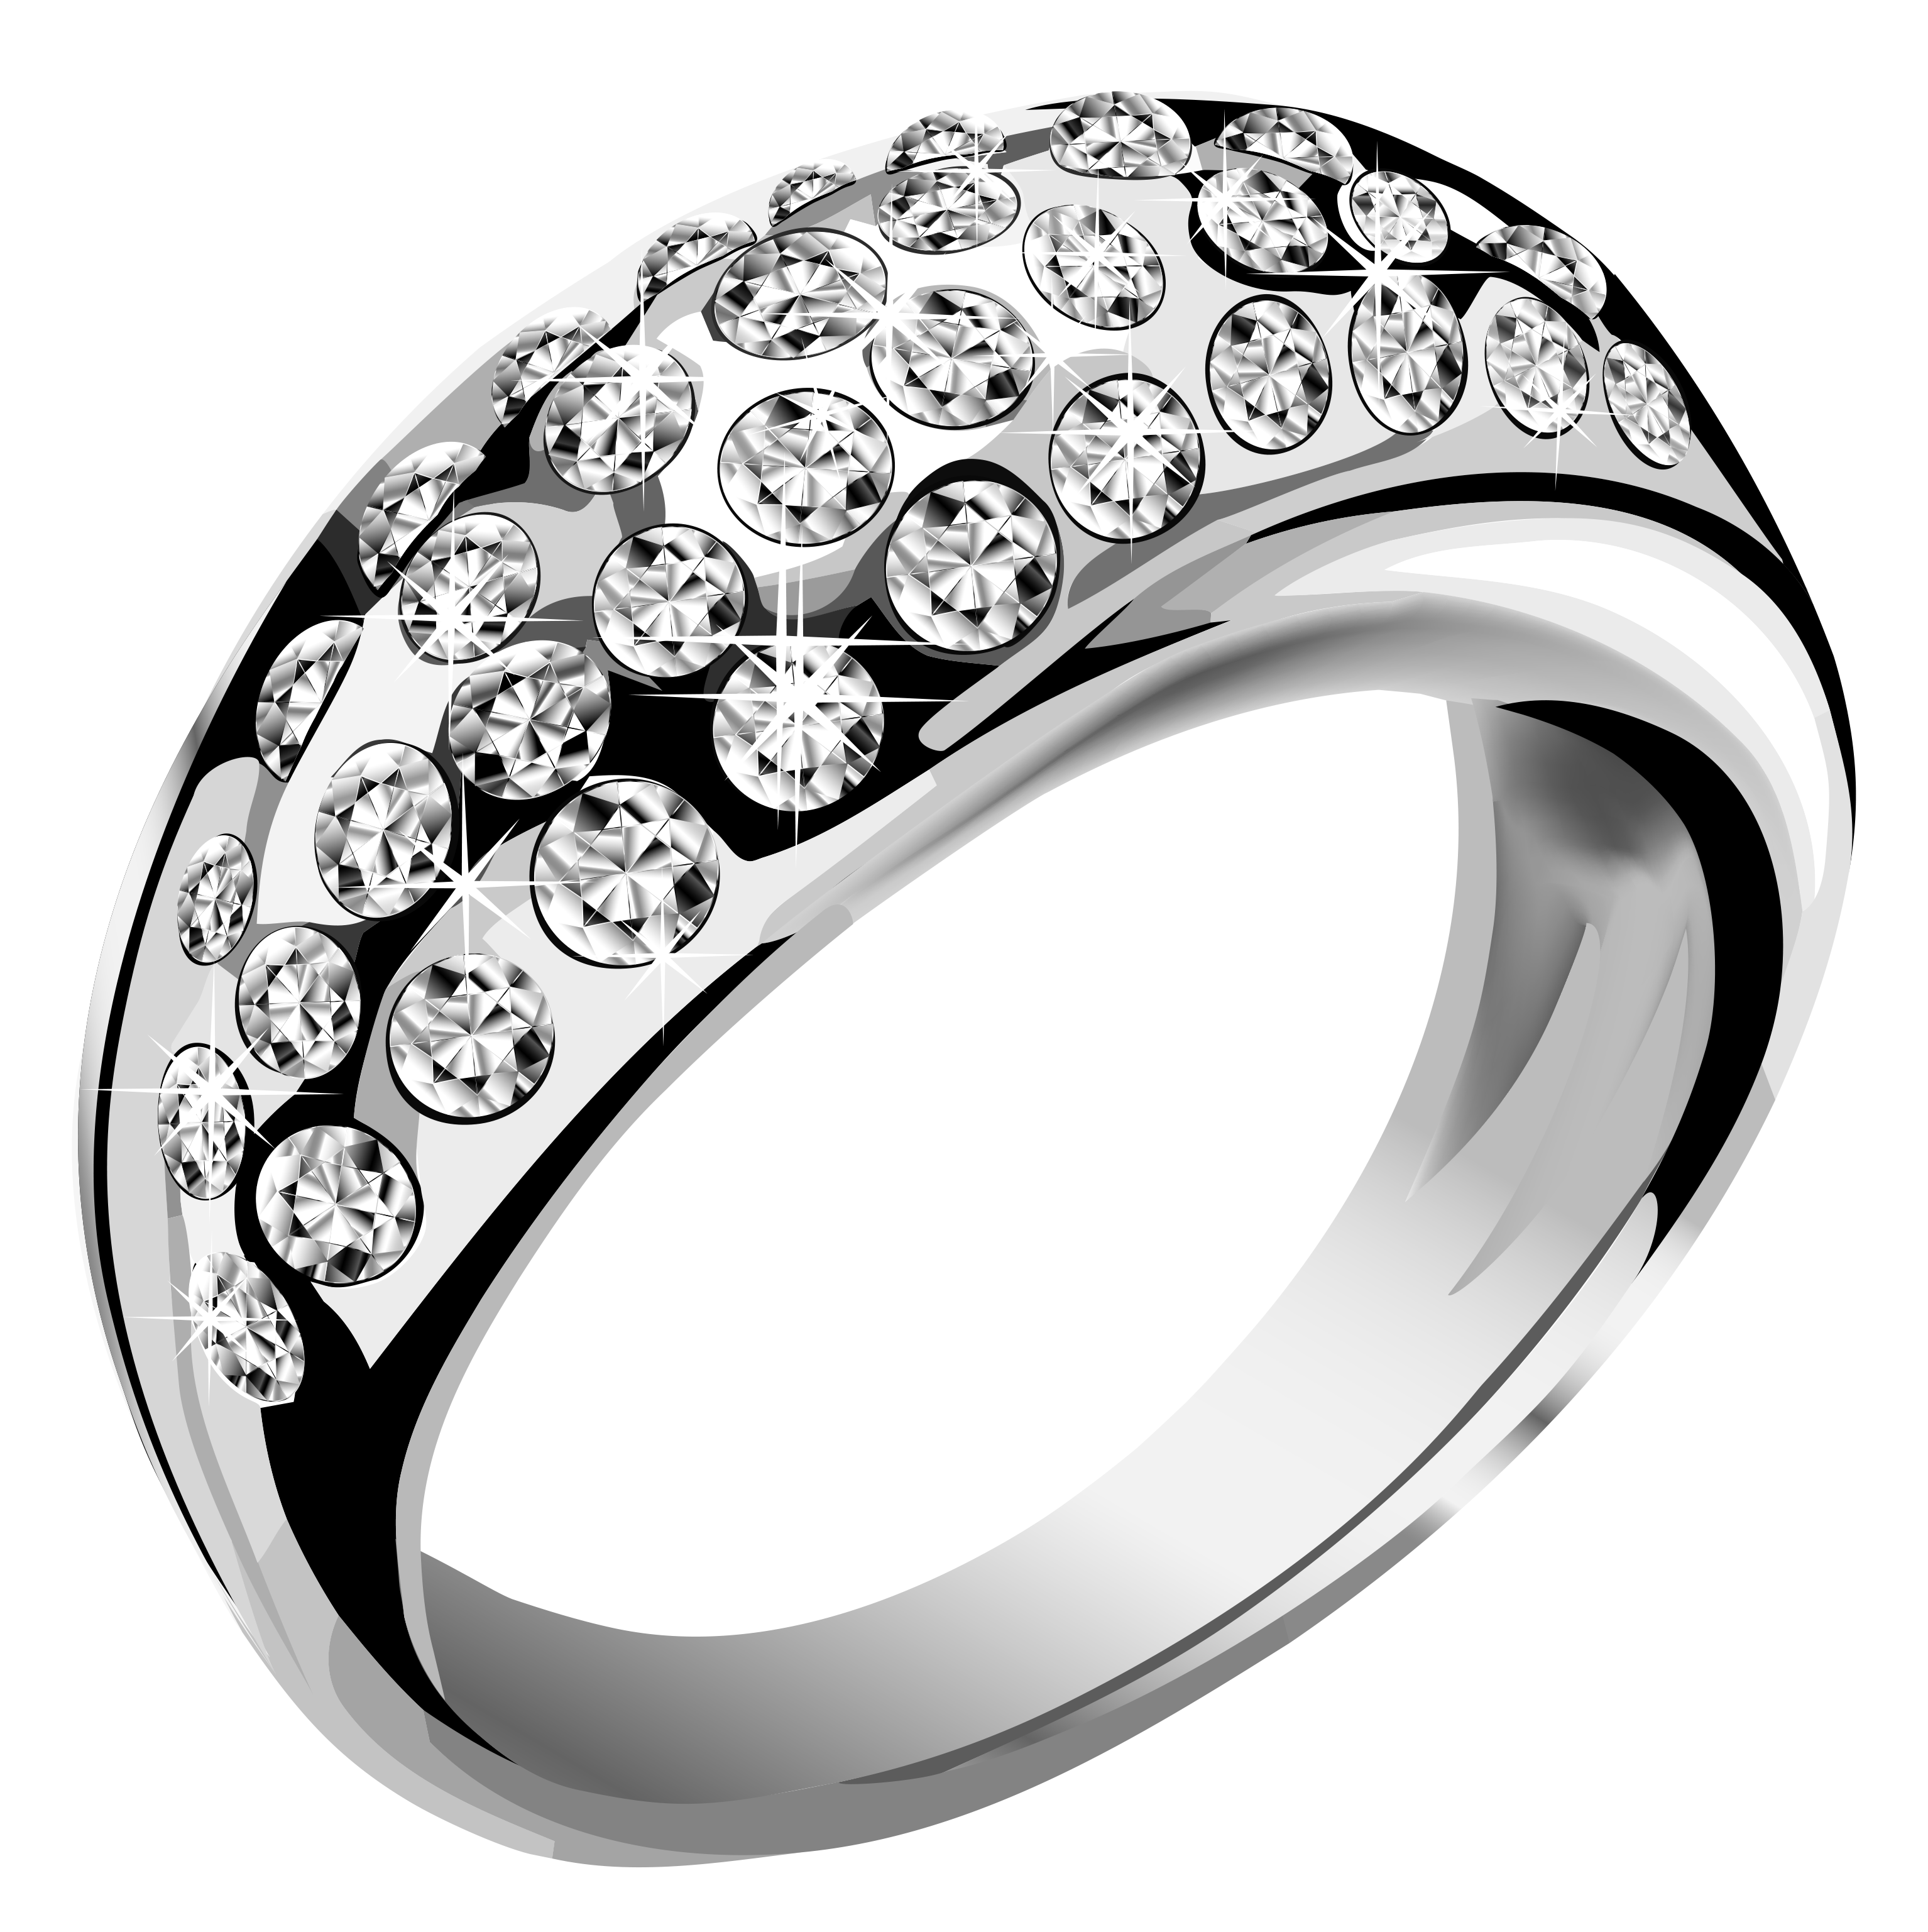 Silver Ring Transparent Background PNG Image